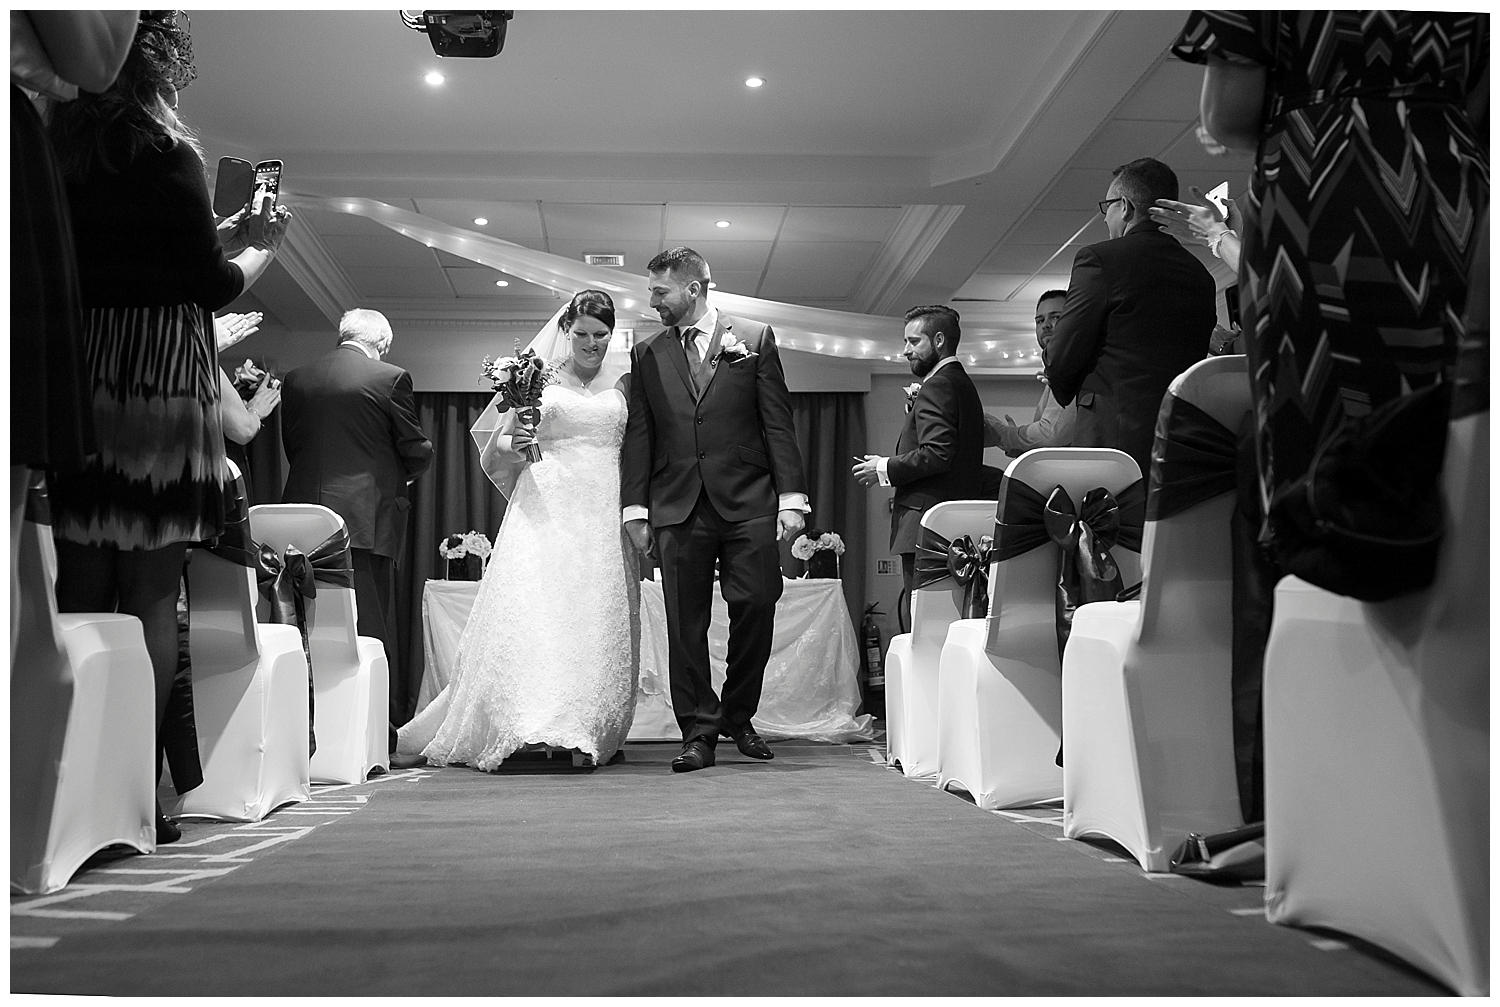 Sarah Bee phorography at The Village Hotel Cheadle, documentory photography at The Village Hotel Cheadle, Wedding photographer at The Village Hotel Cheadle, wedding Photography at The Village Hotel Cheadle_0138.jpg